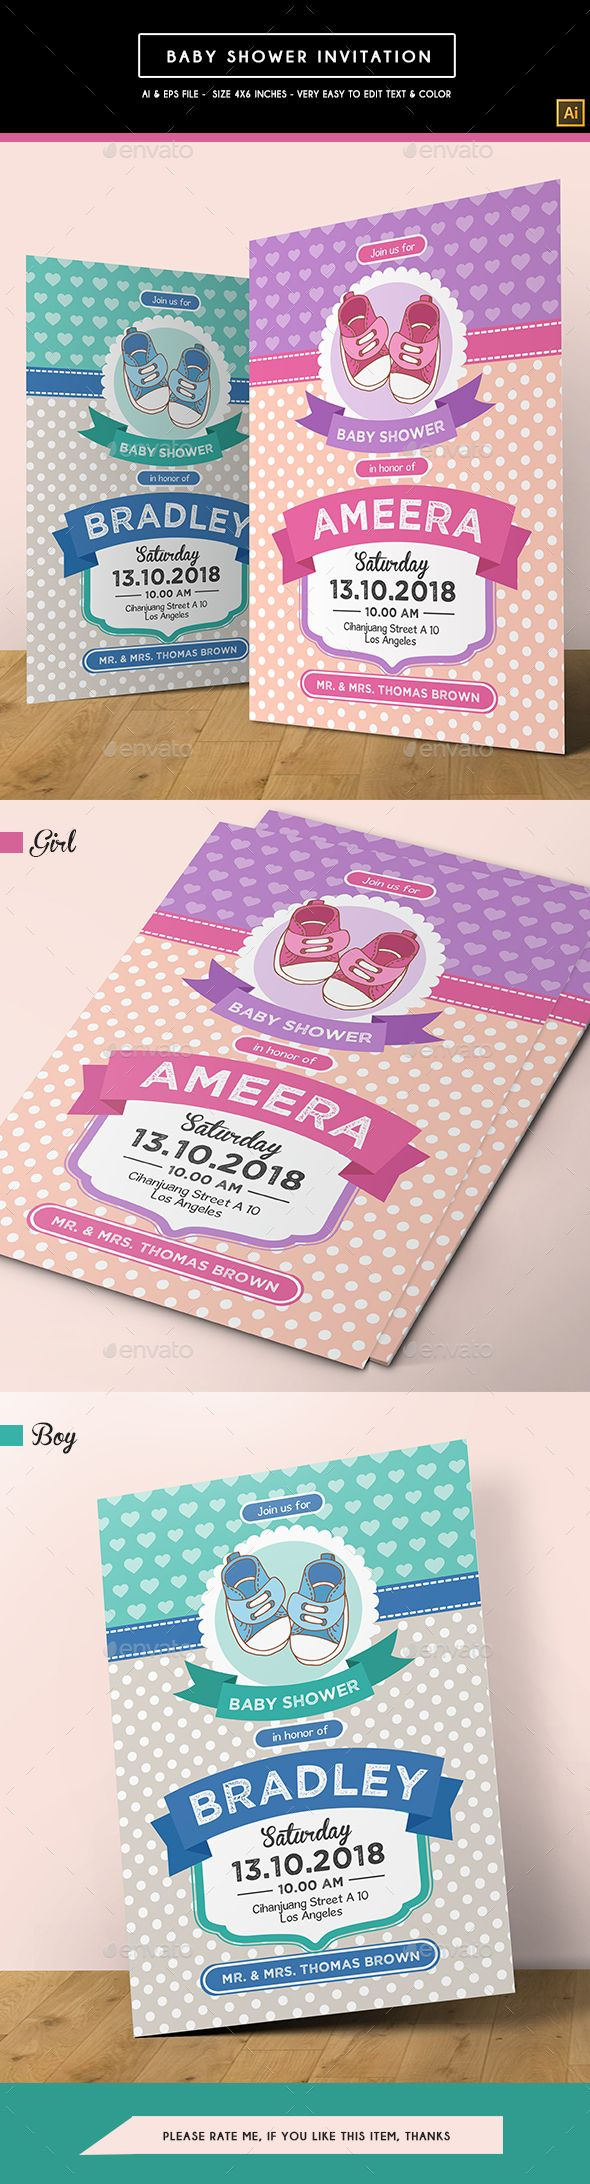 business event invitation templates%0A  Baby  Shower  Invitation   Invitations Cards  u     Invites